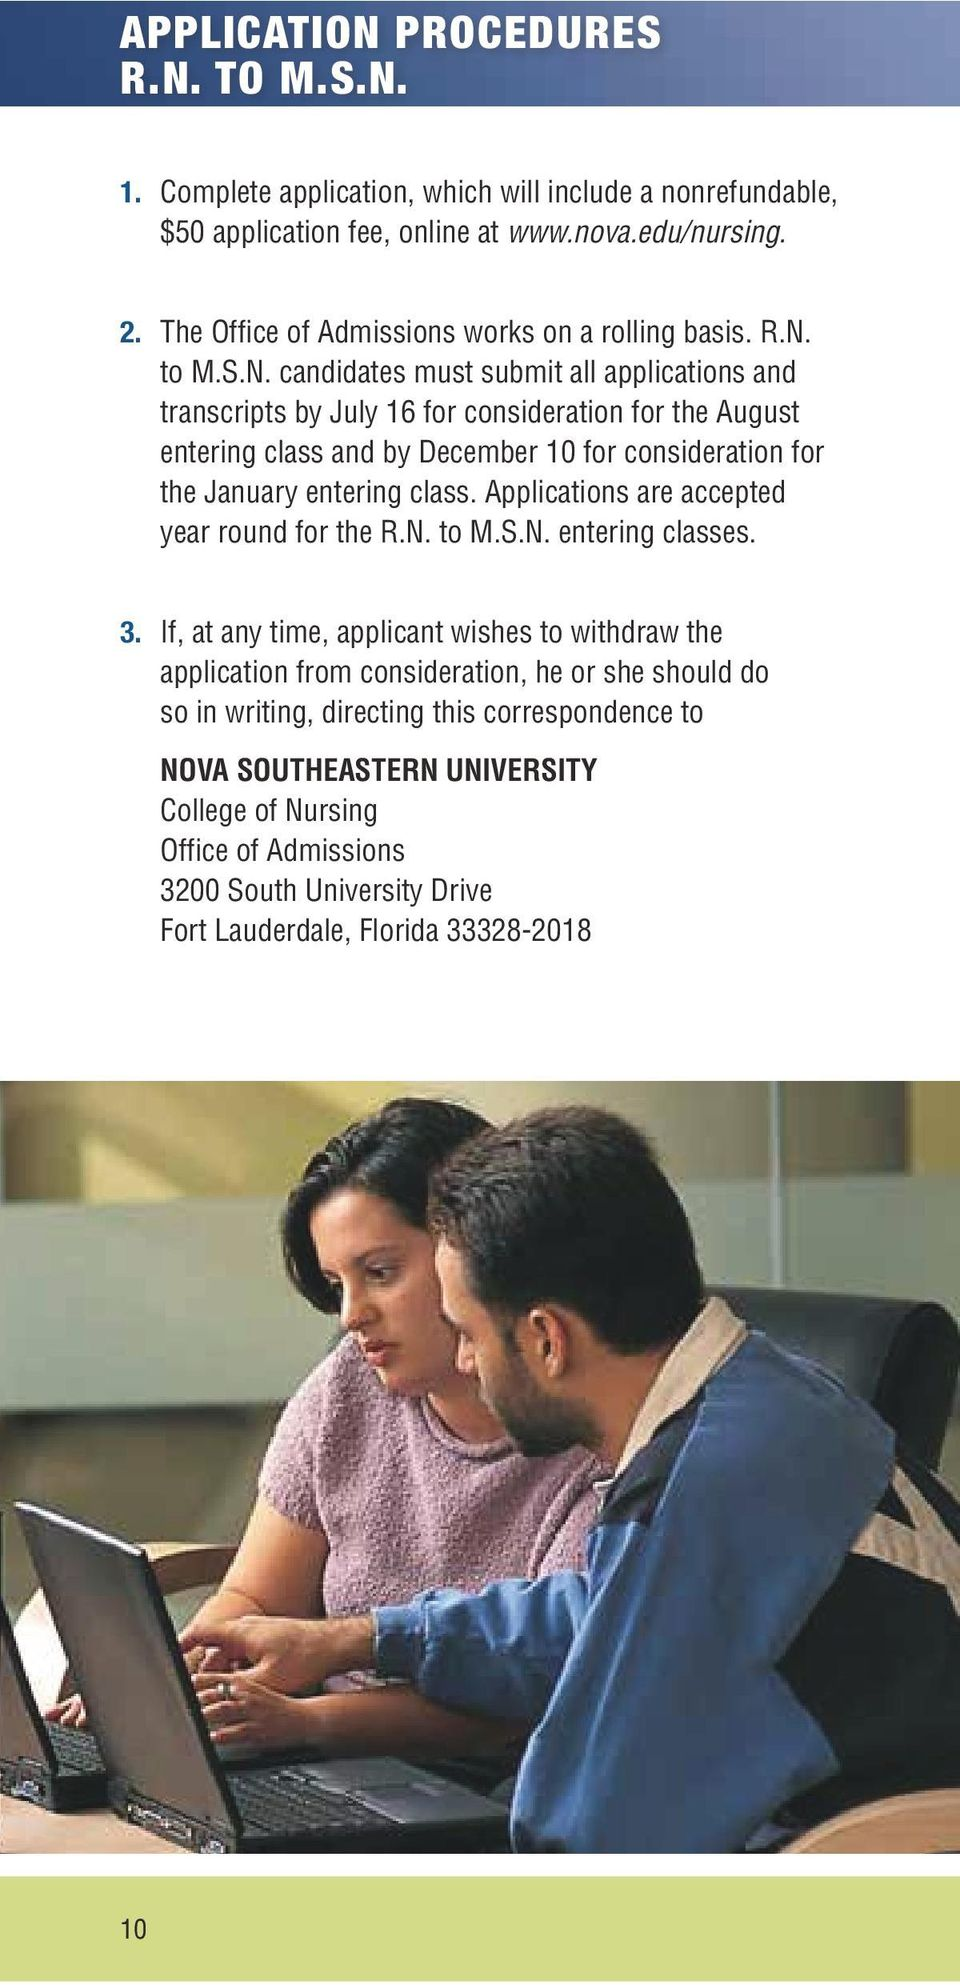 to M.S.N. candidates must submit all applications and transcripts by July 16 for consideration for the August entering class and by December 10 for consideration for the January entering class.